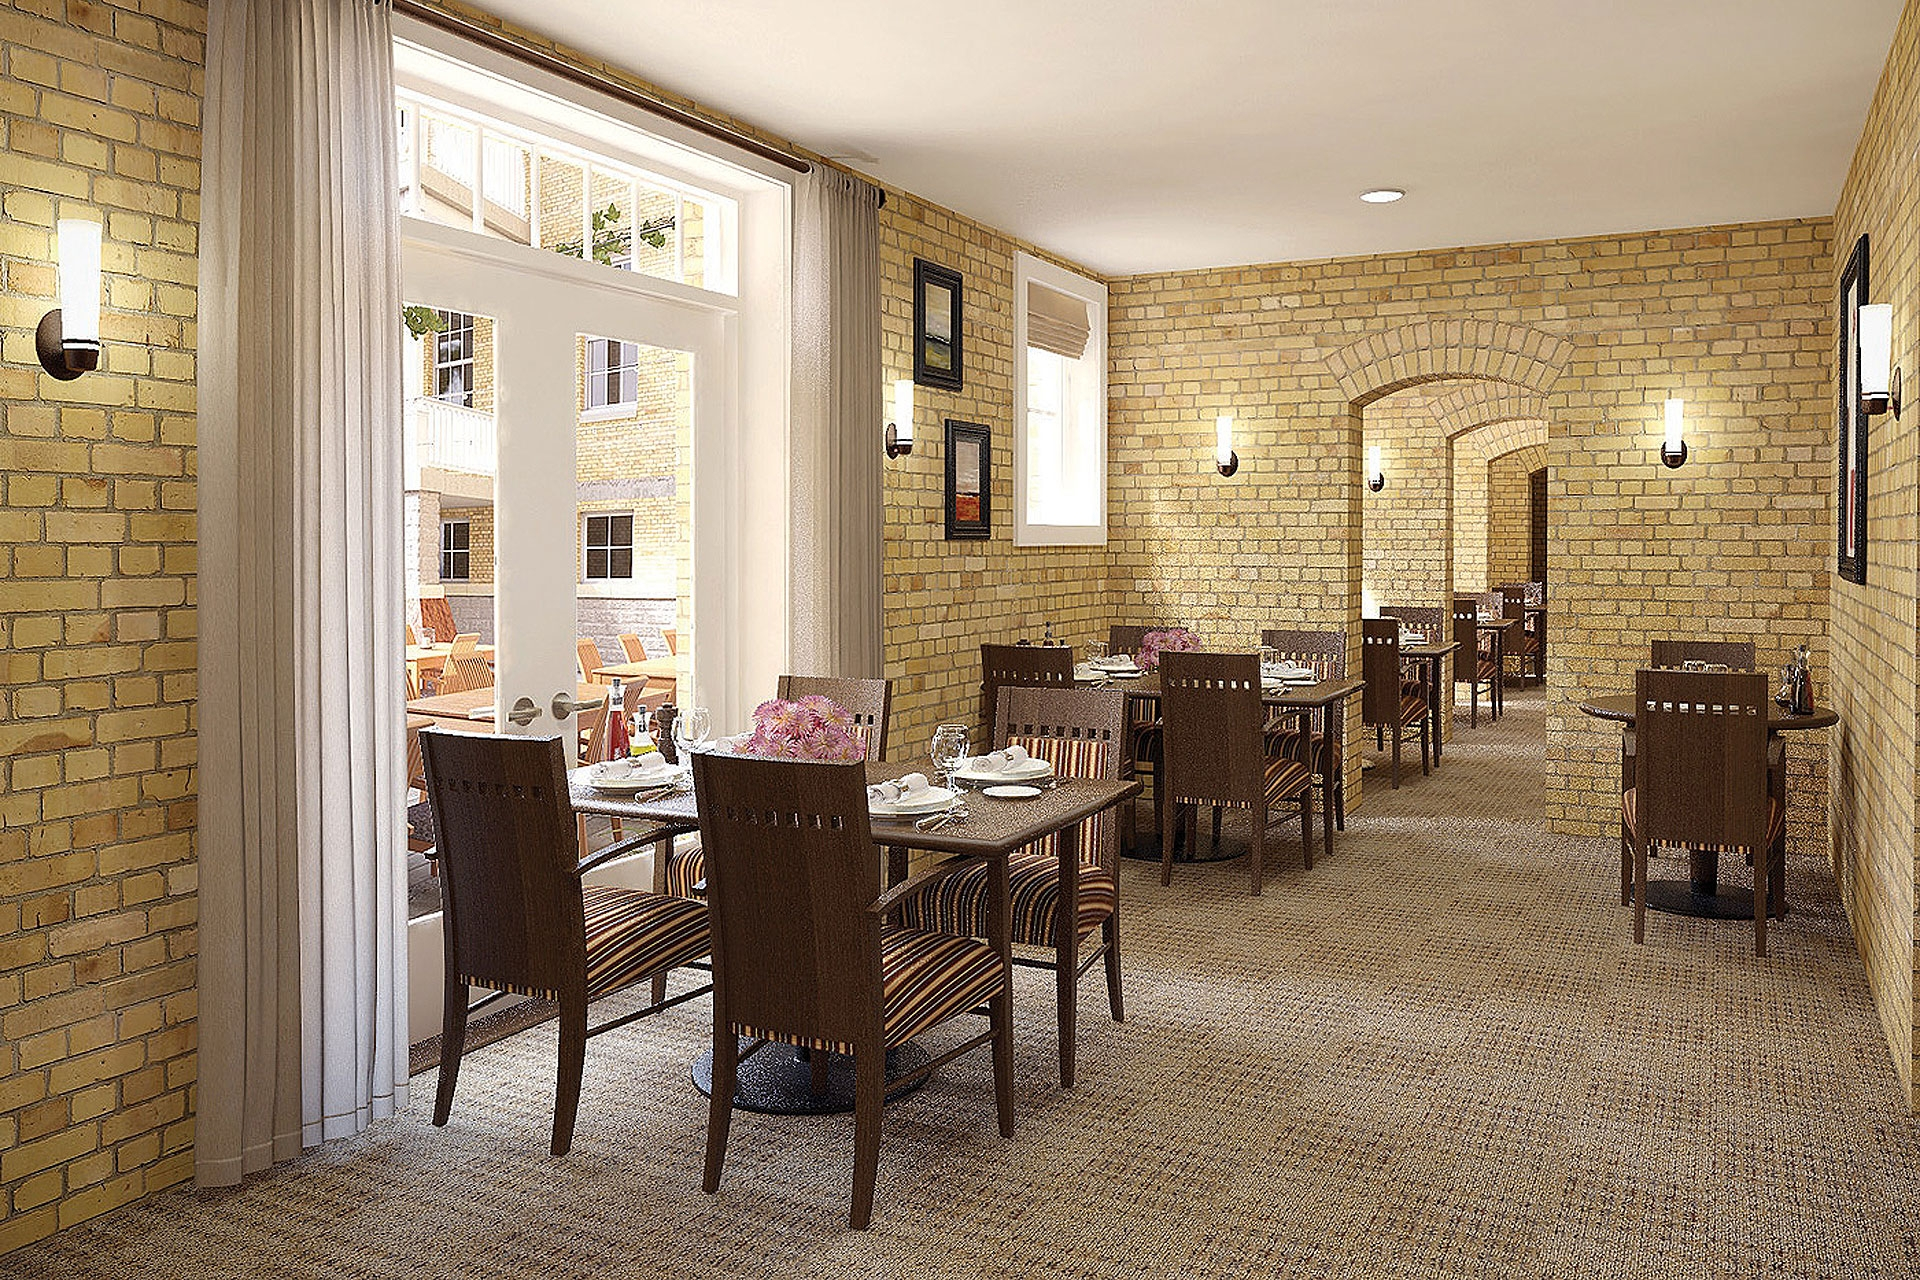 For the seniors living in this assisted living  community, we've designed dining pockets next to the windows around the courtyard